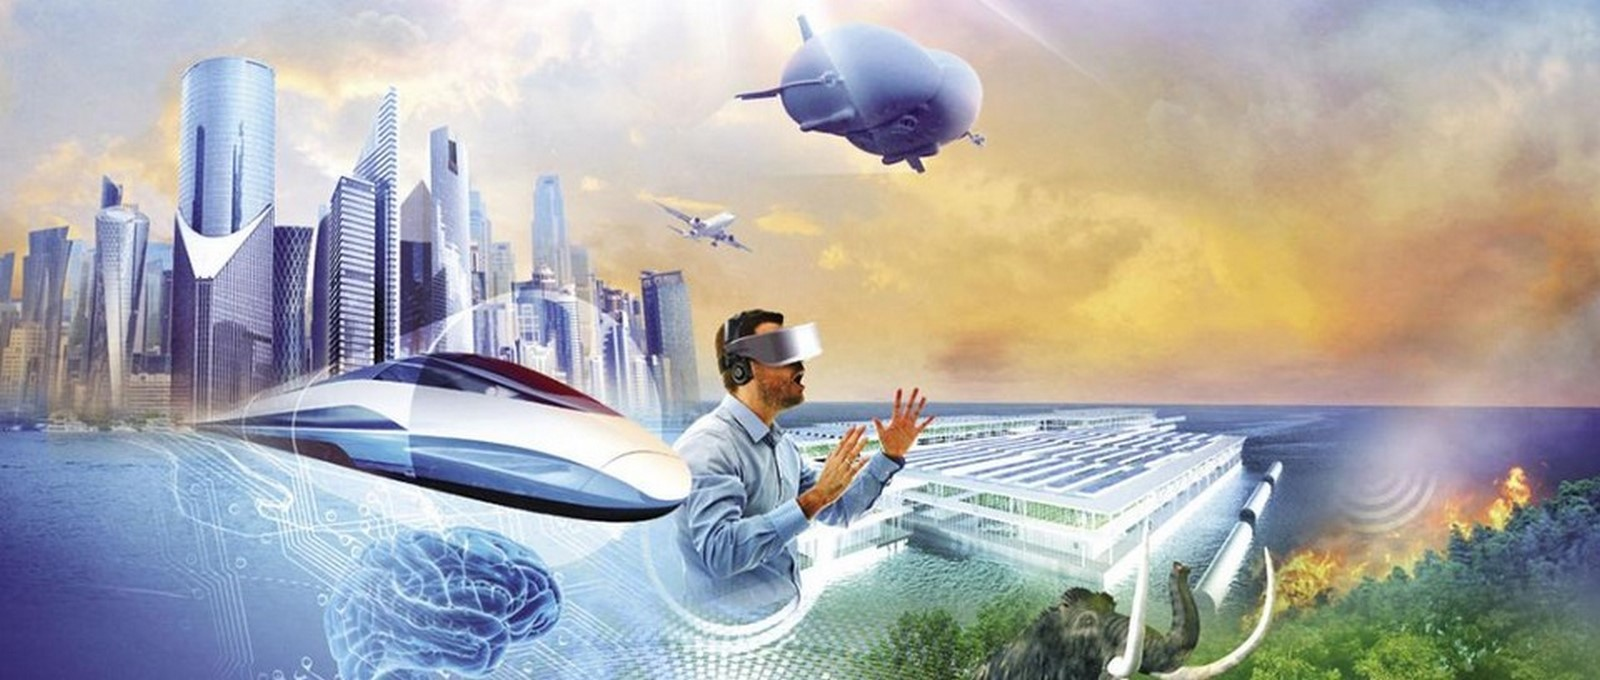 Emerging Technology Trends that will help shape Future of Architecture - Sheet2